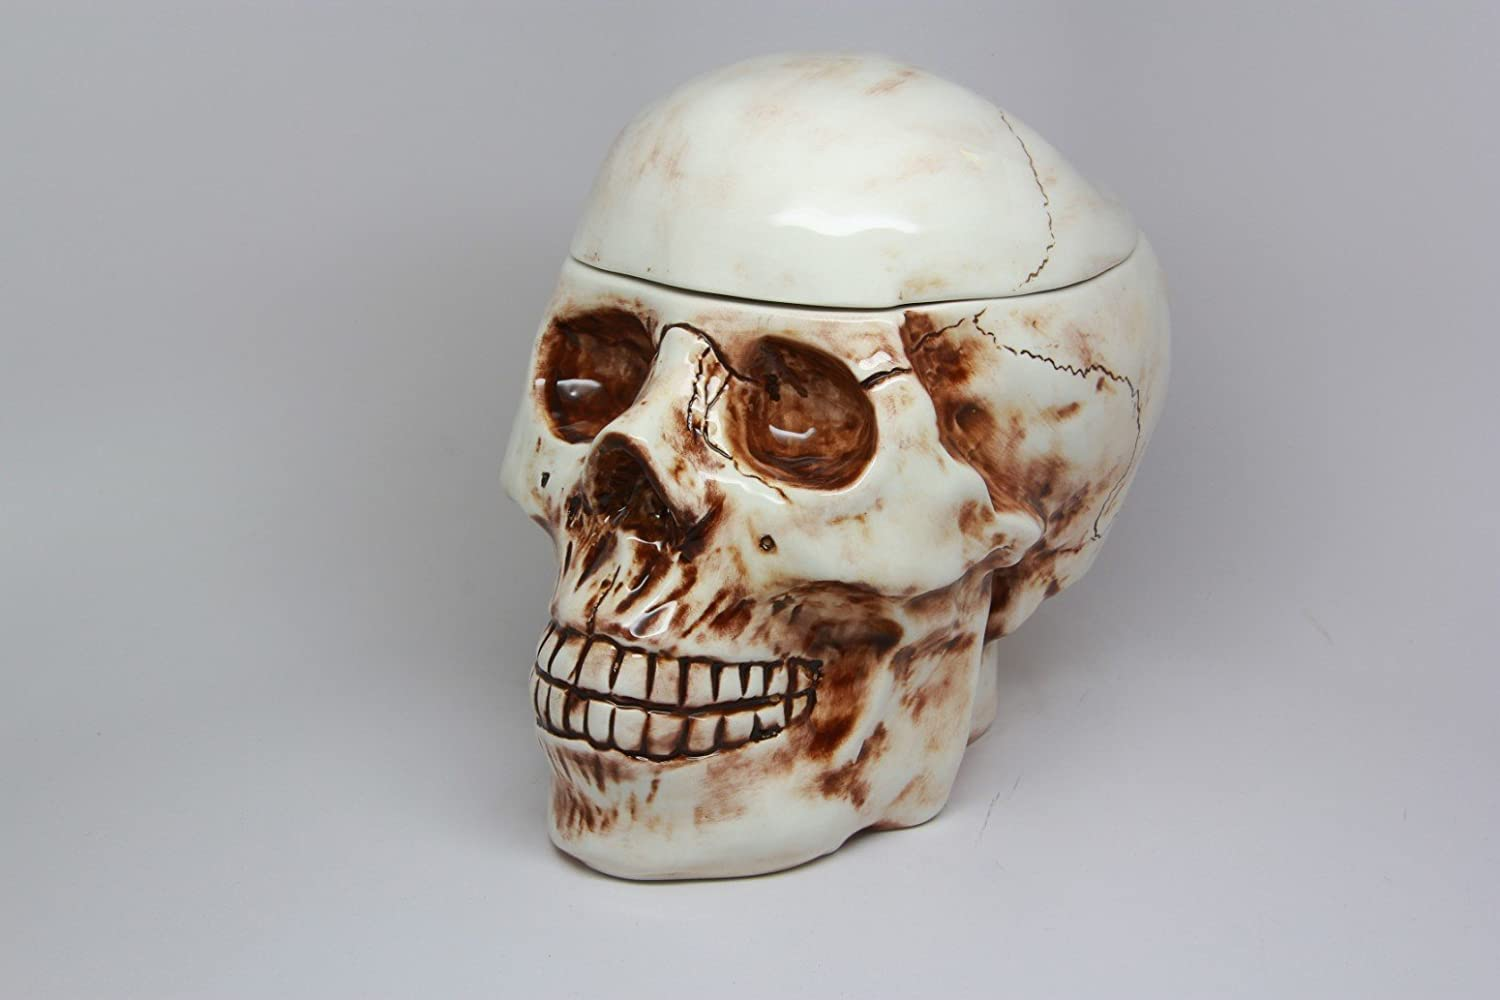 8 Inch Skeleton Skull Shaped Ceramic Cookie Jar Statue Figurine